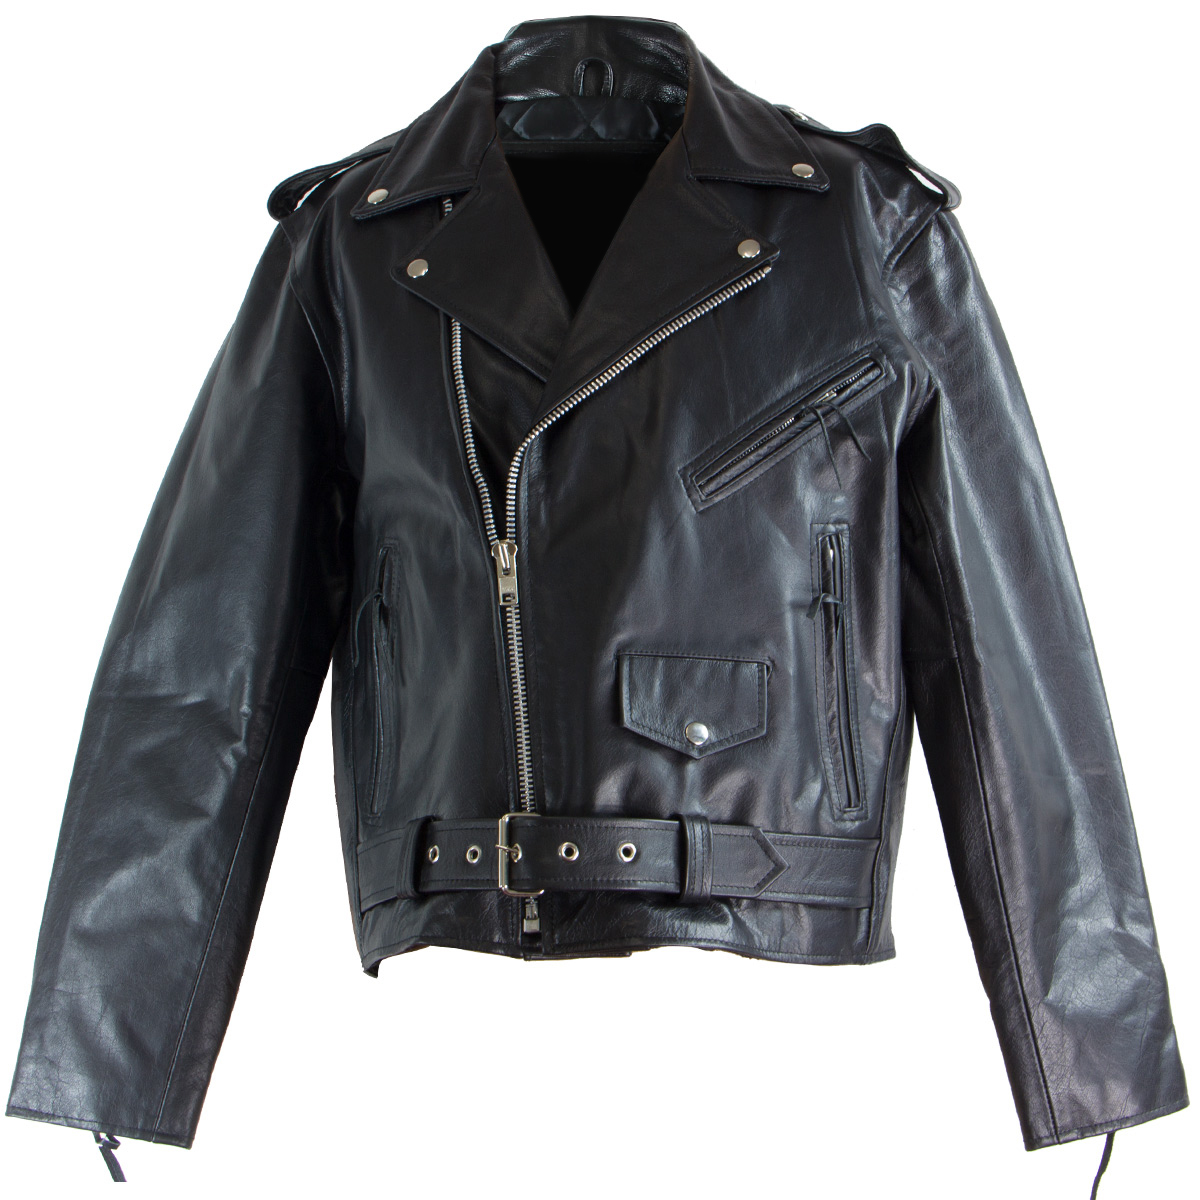 Black-TOP-GRADE-Leather-Motorcycle-Biker-Jacket